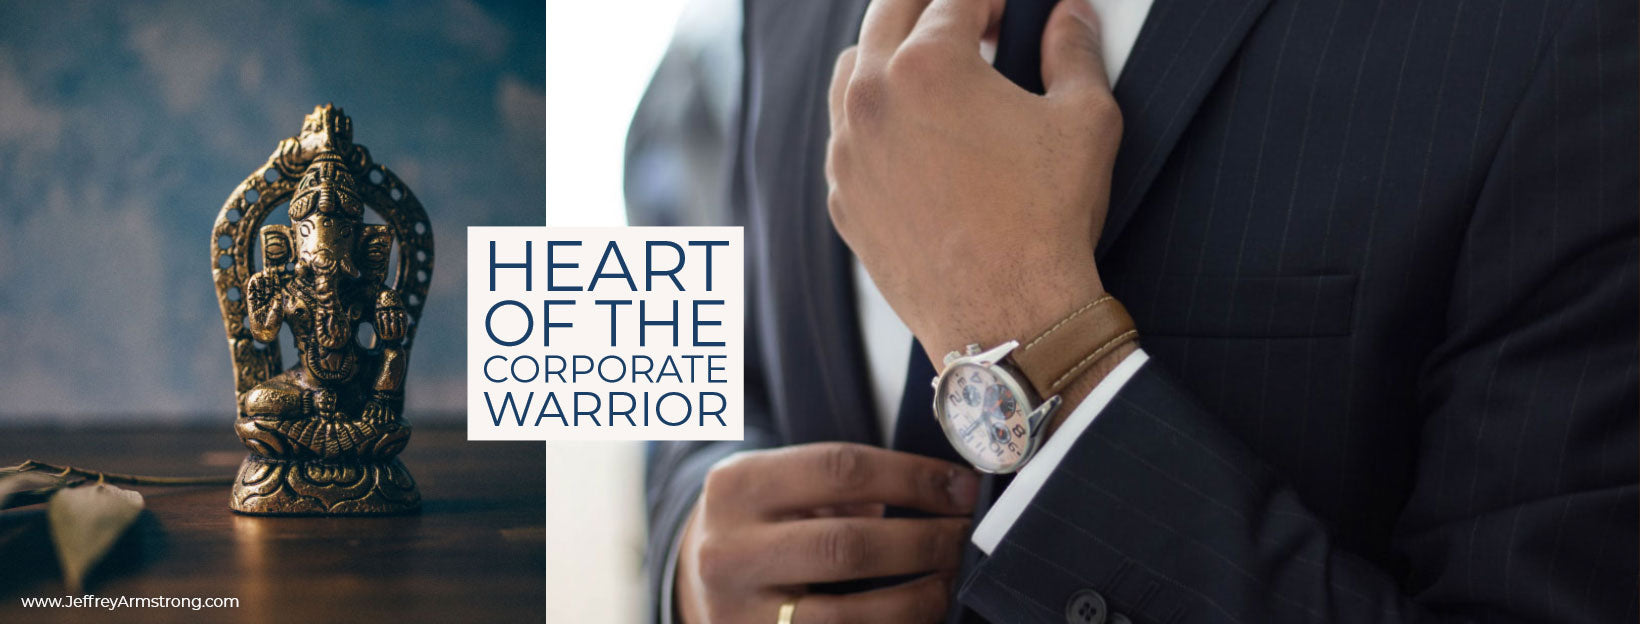 The Heart of the Corporate Warrior